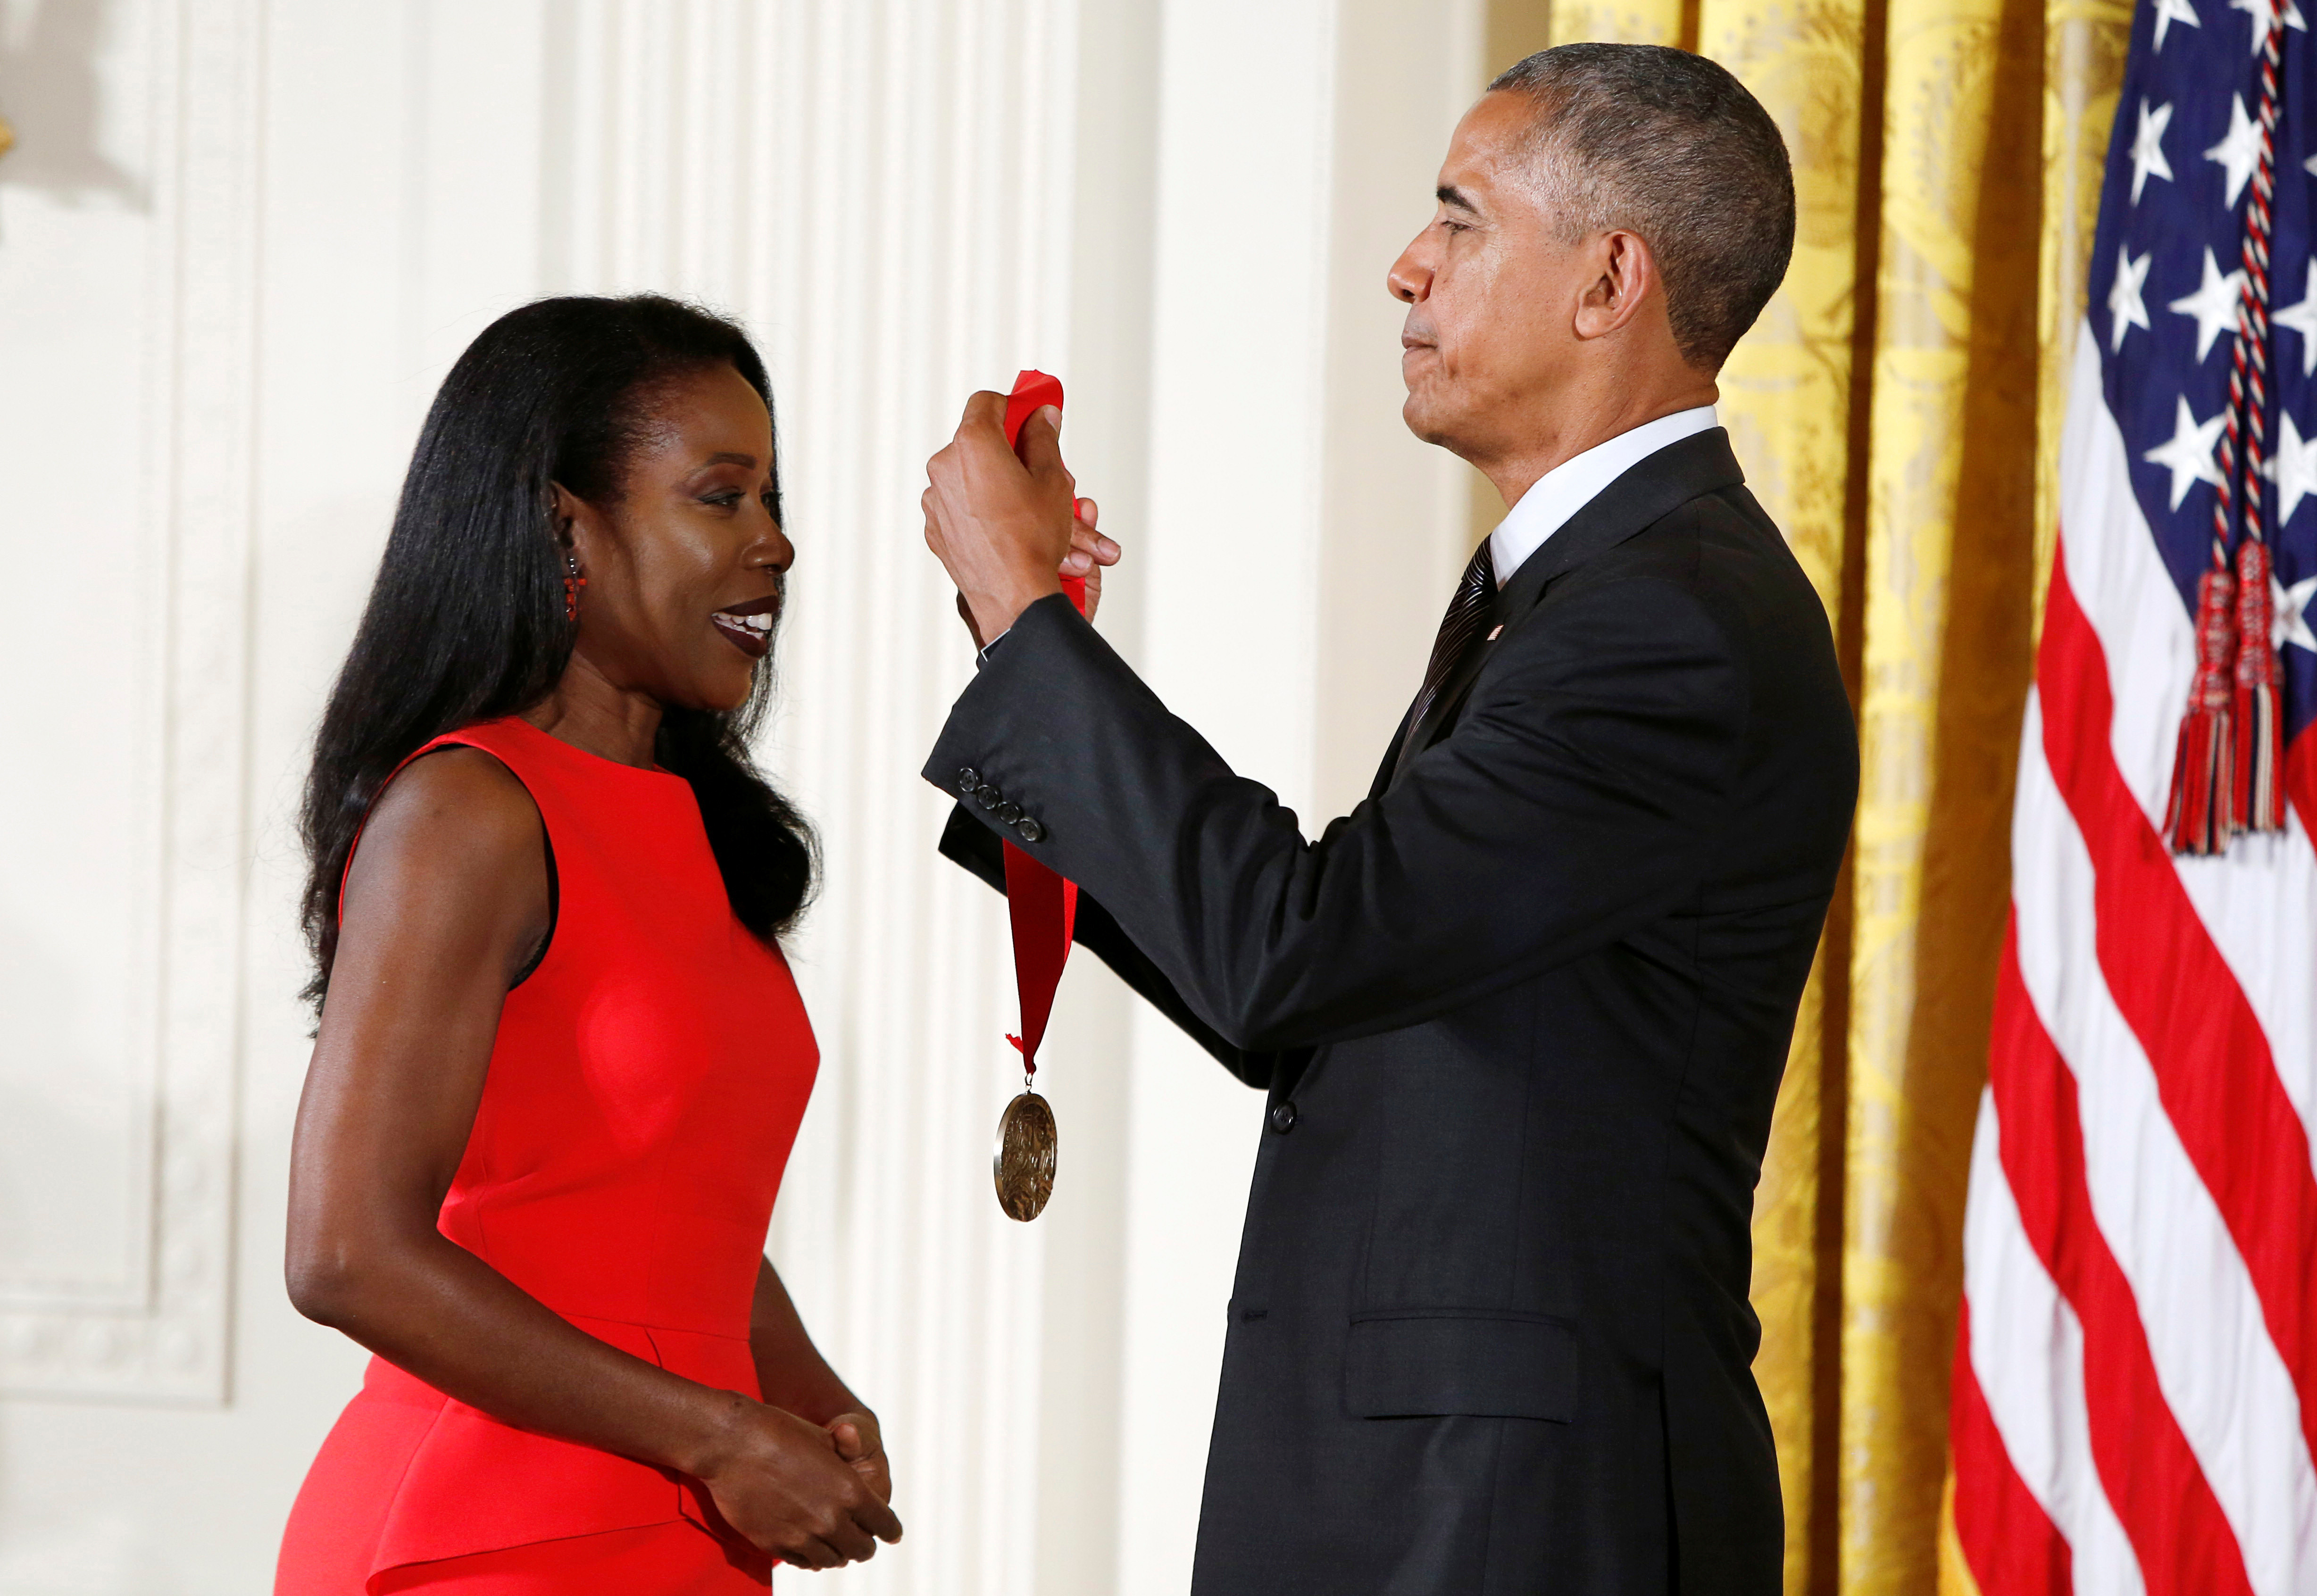 U.S. President Barack Obama awards to journalist Isabel Wilkerson (L) at the White House